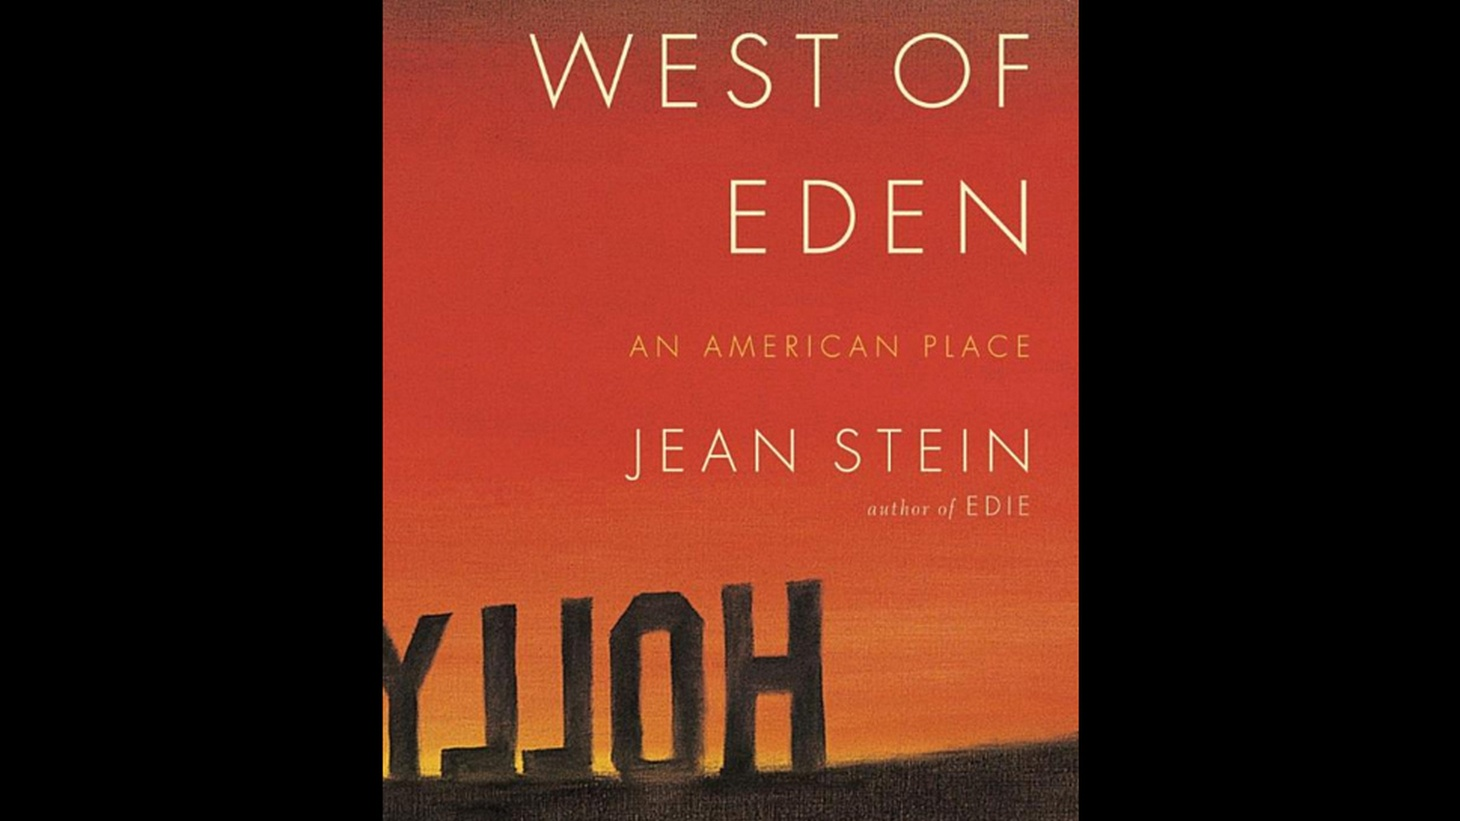 The history of Los Angeles is a history of the families that shaped it. In a new book called  West of Eden , oral historian and author Jean Stein tells the stories of five families who shaped our city, including her own. Her father was Jules Stein, founder of the media giant MCA in the 1920s.